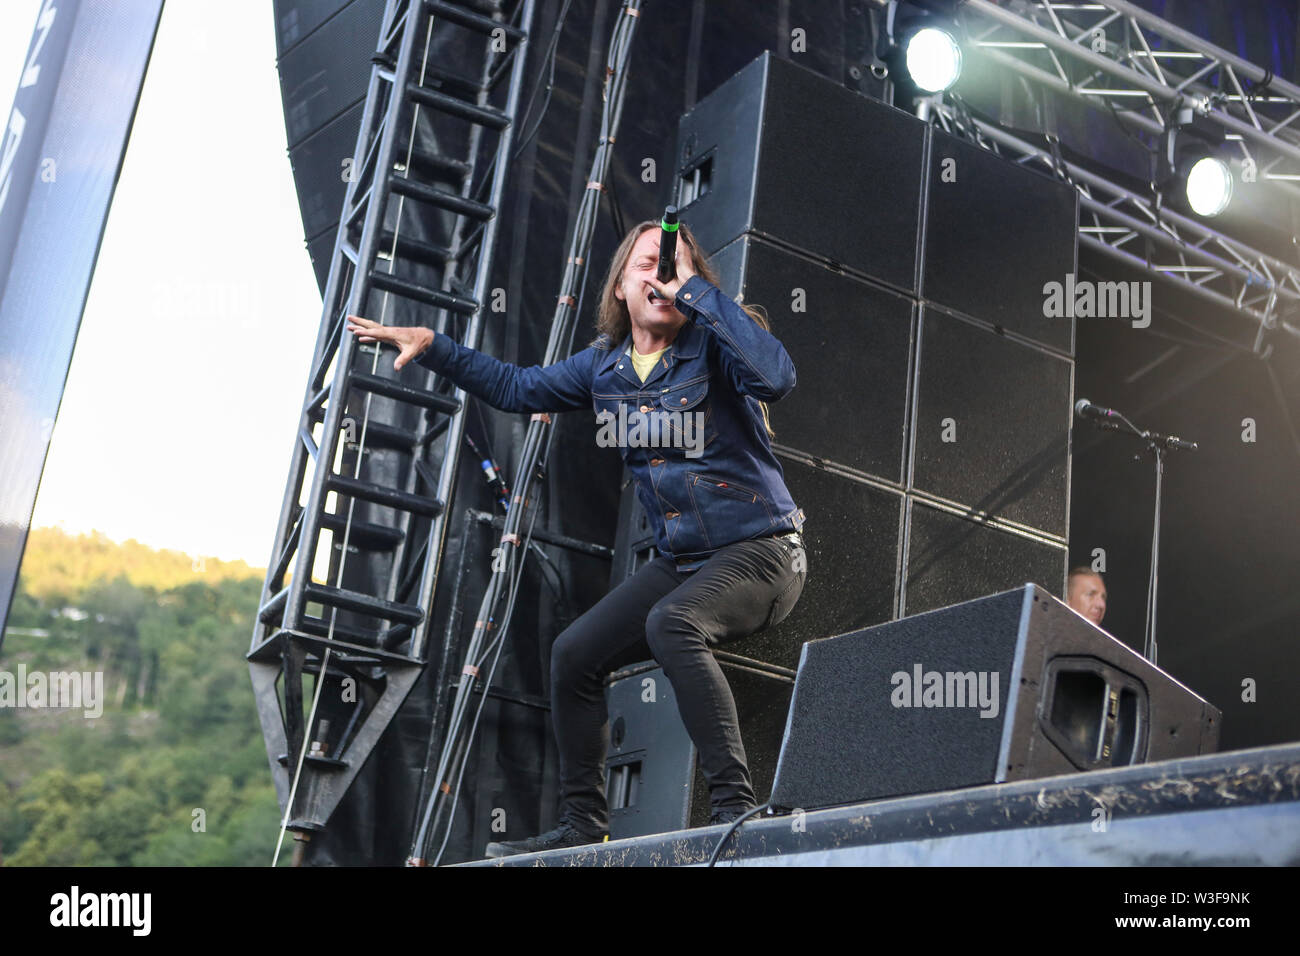 Kvinesdal, Norway - July 11th, 2019. The Danish rock band D-A-D performs a live concert during the Norwegian music festival Norway Rock Festival 2019. Here singer Jesper Binzer is seen live on stage. (Photo credit: Gonzales Photo - Synne Nilsson). - Stock Image